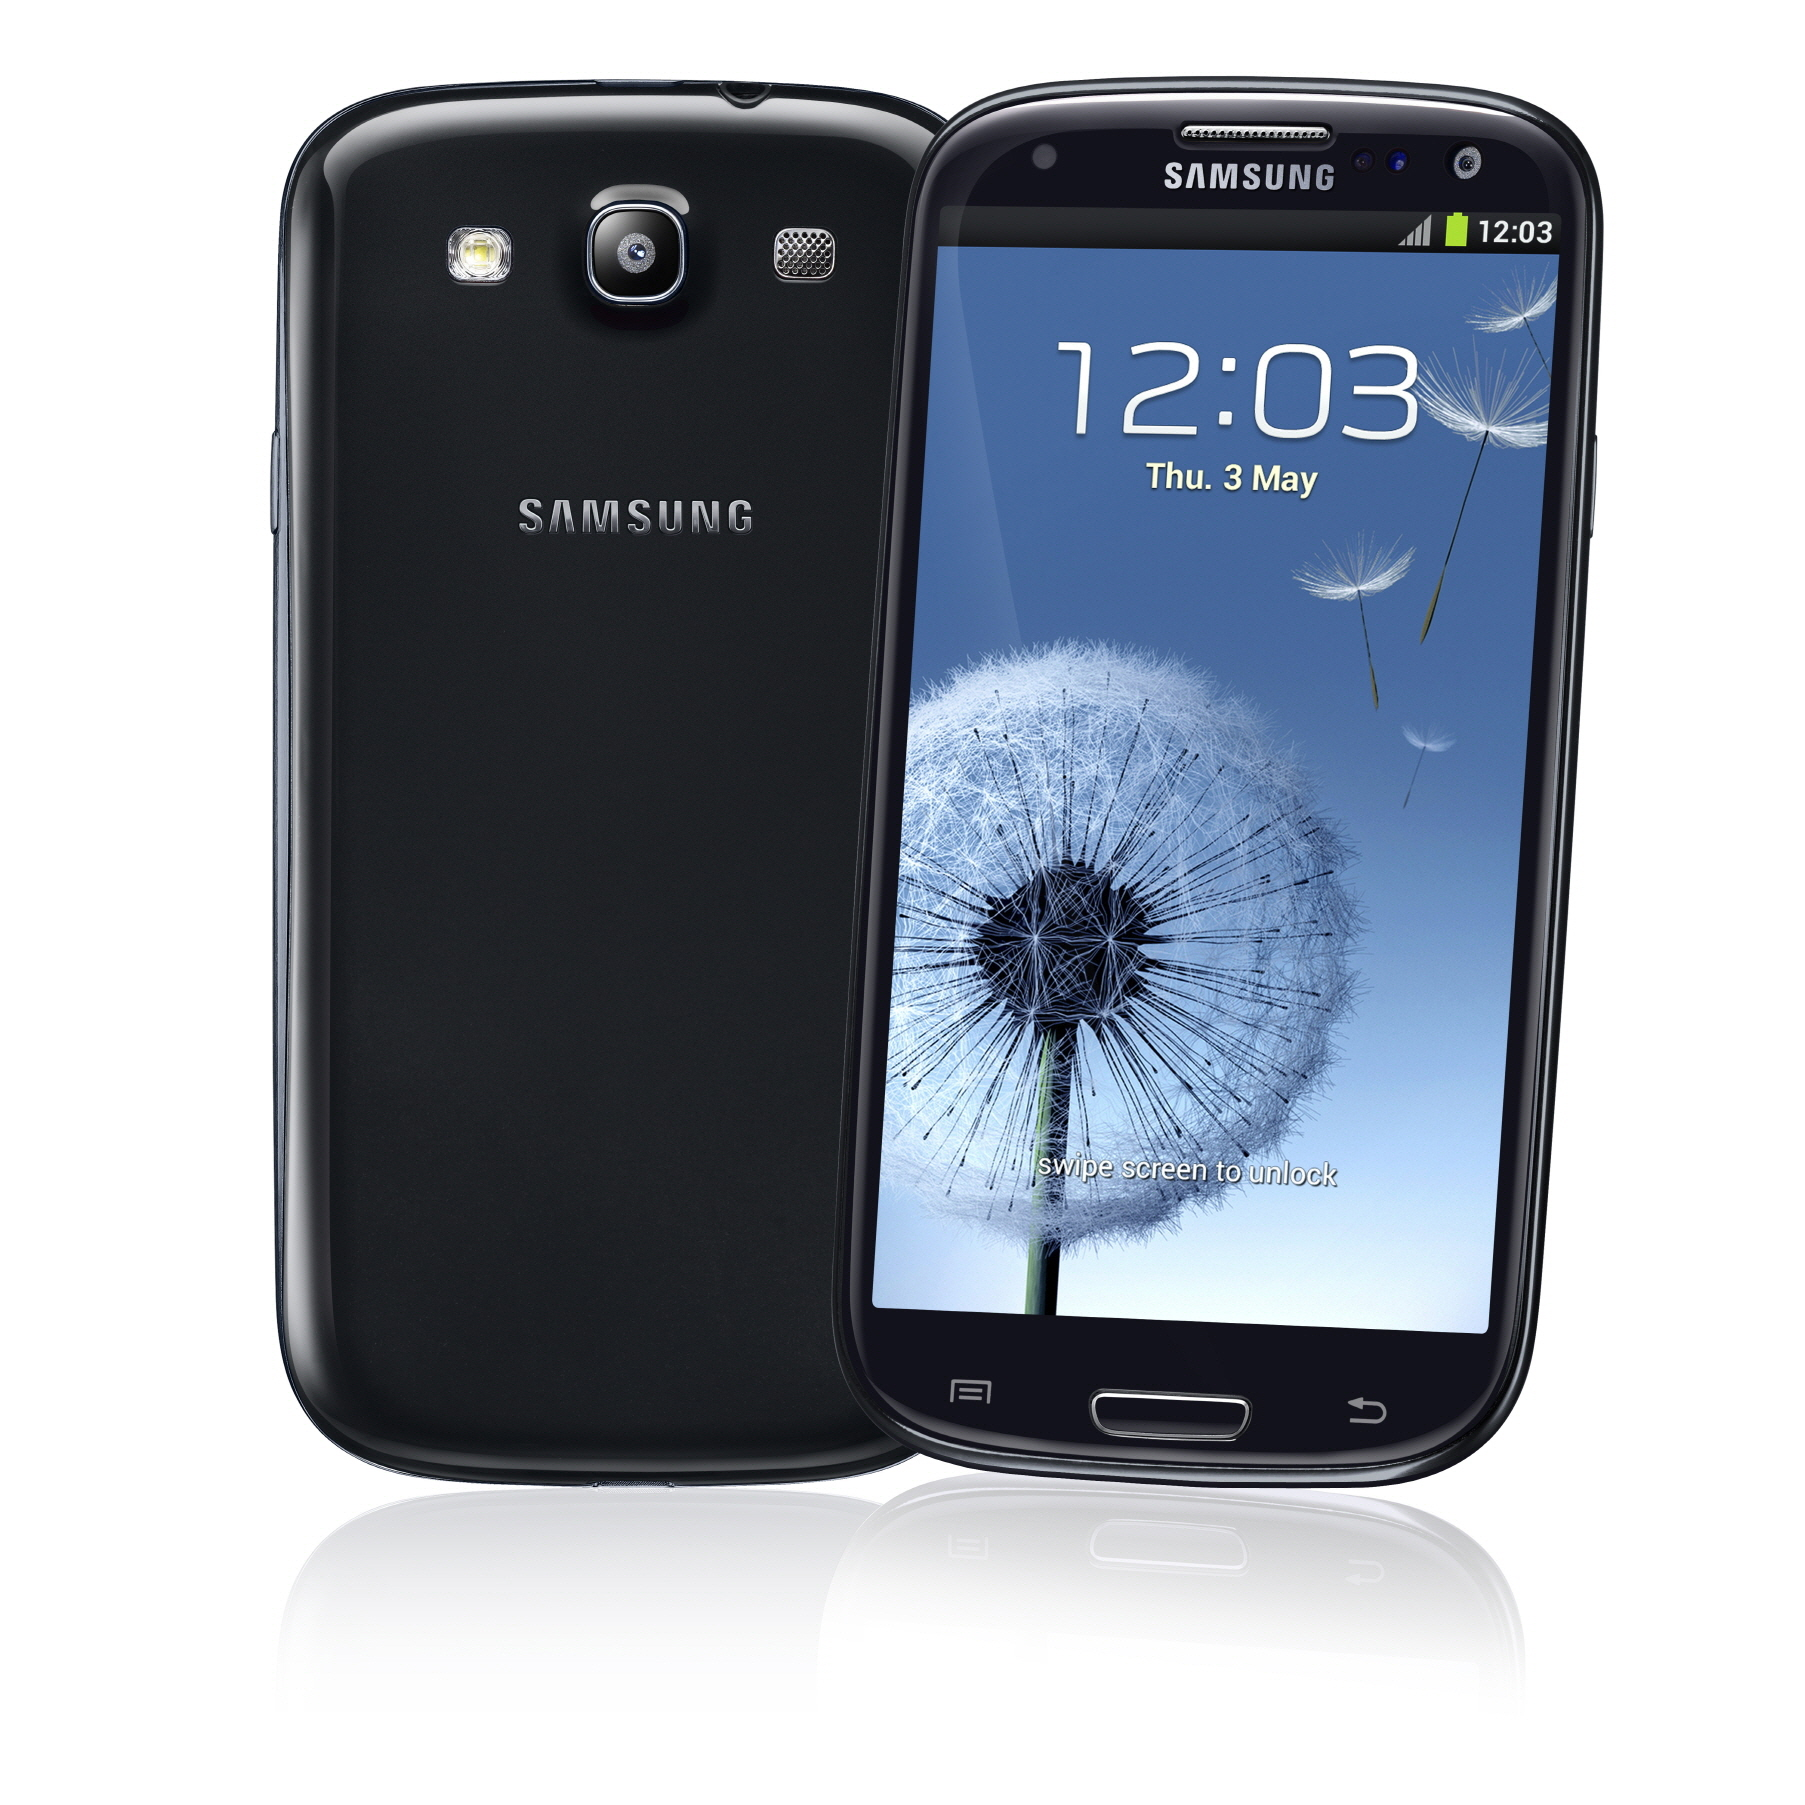 samsung galaxy s3 black 16gb android 4g lte phone verizon excellent condition used cell. Black Bedroom Furniture Sets. Home Design Ideas